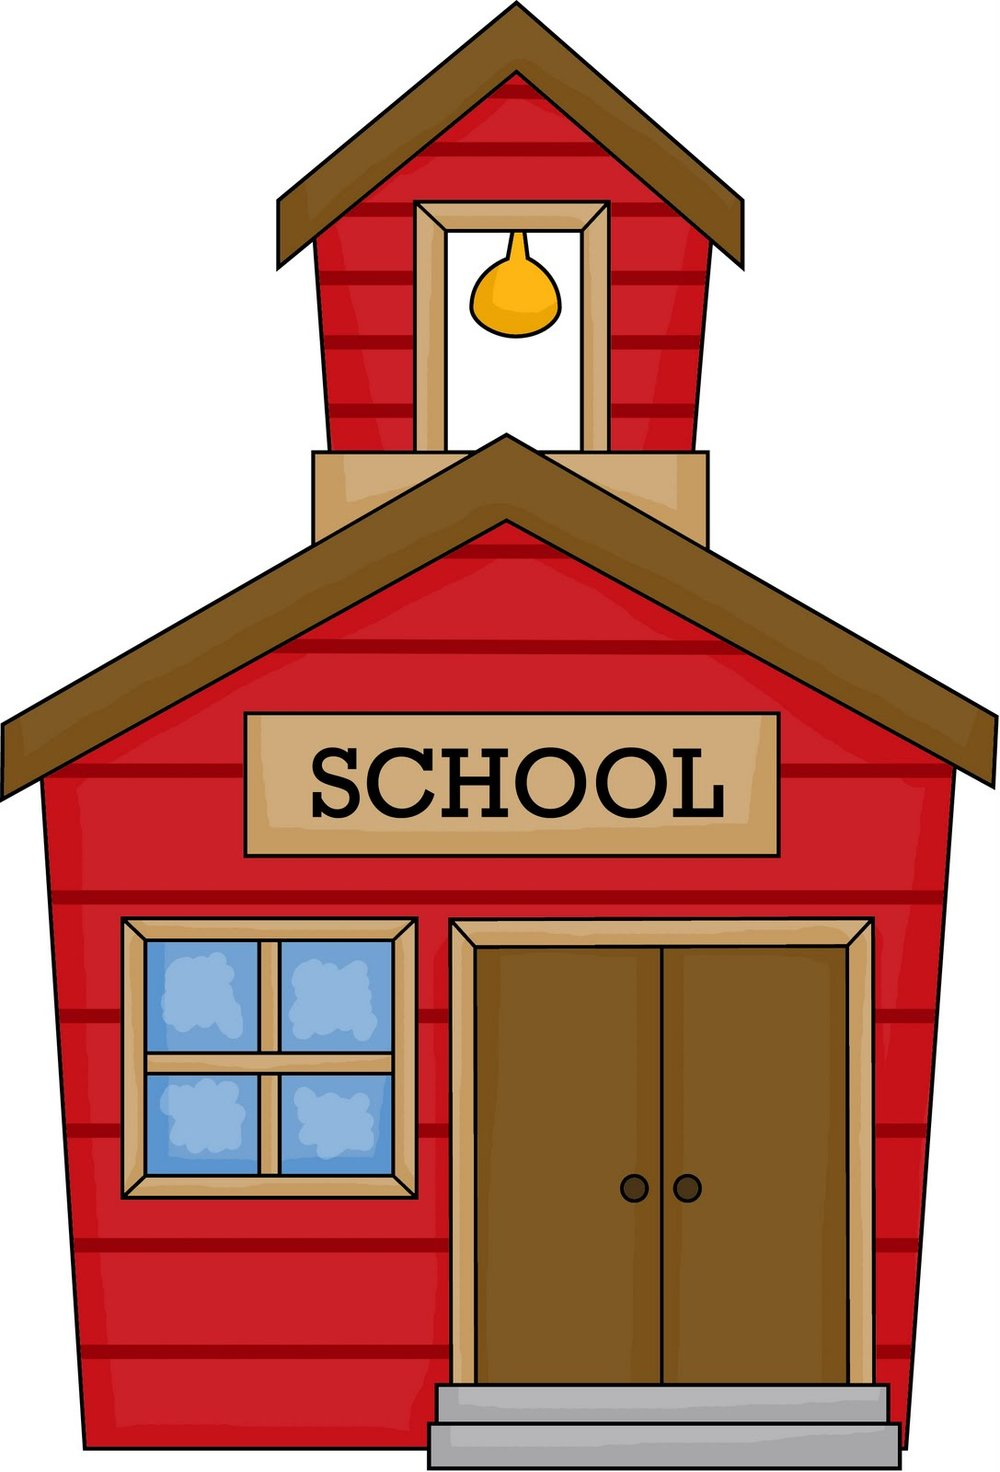 school-house-images-schoolhouse-clip-art-live-love-laugh-everyday-in-kindergarten--july-2011-pictures.jpg